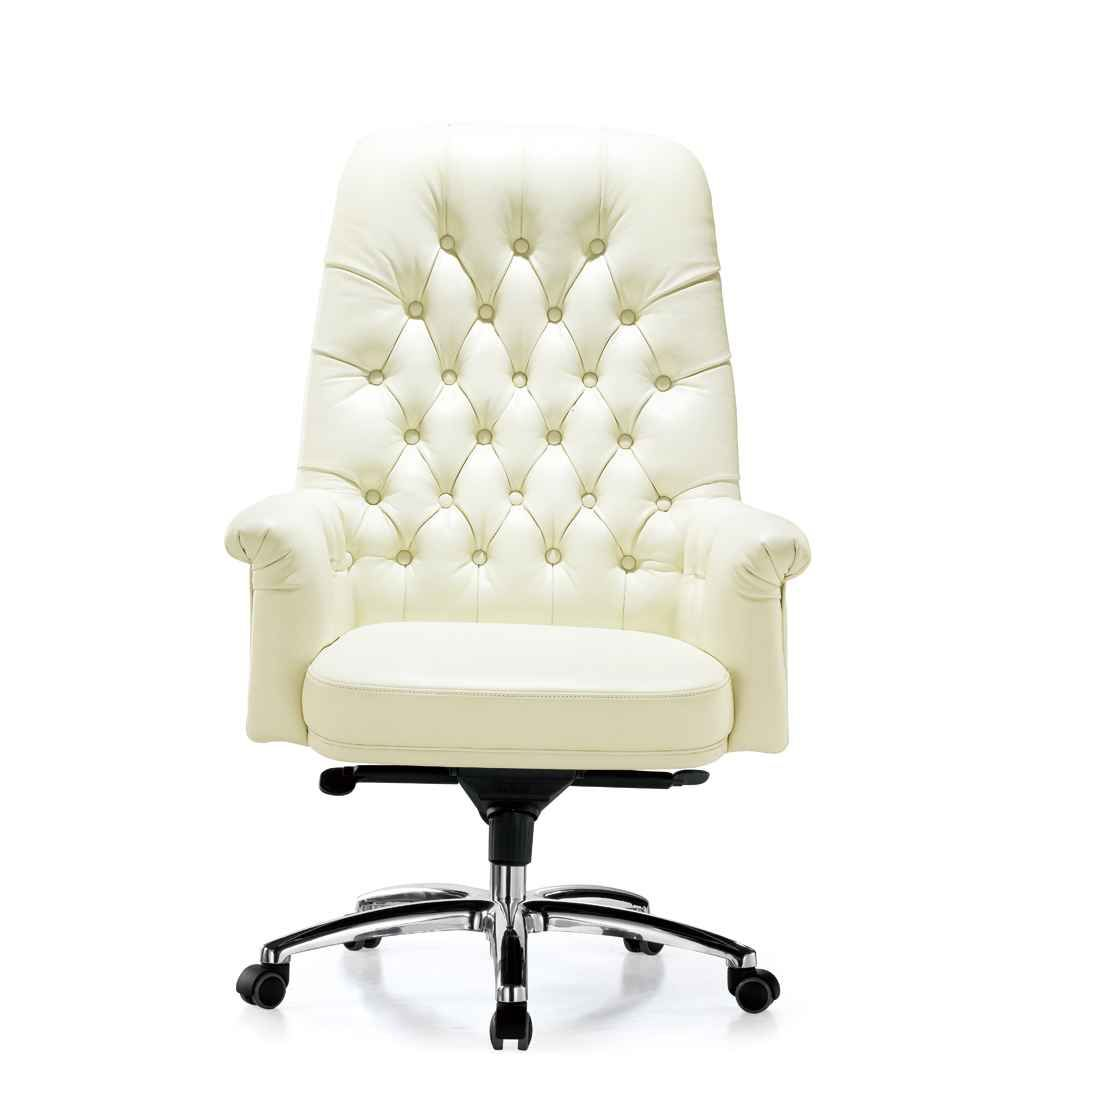 luxury leather office chair. swivel luxury white leather office chair comfortable and stylish the perfect combination